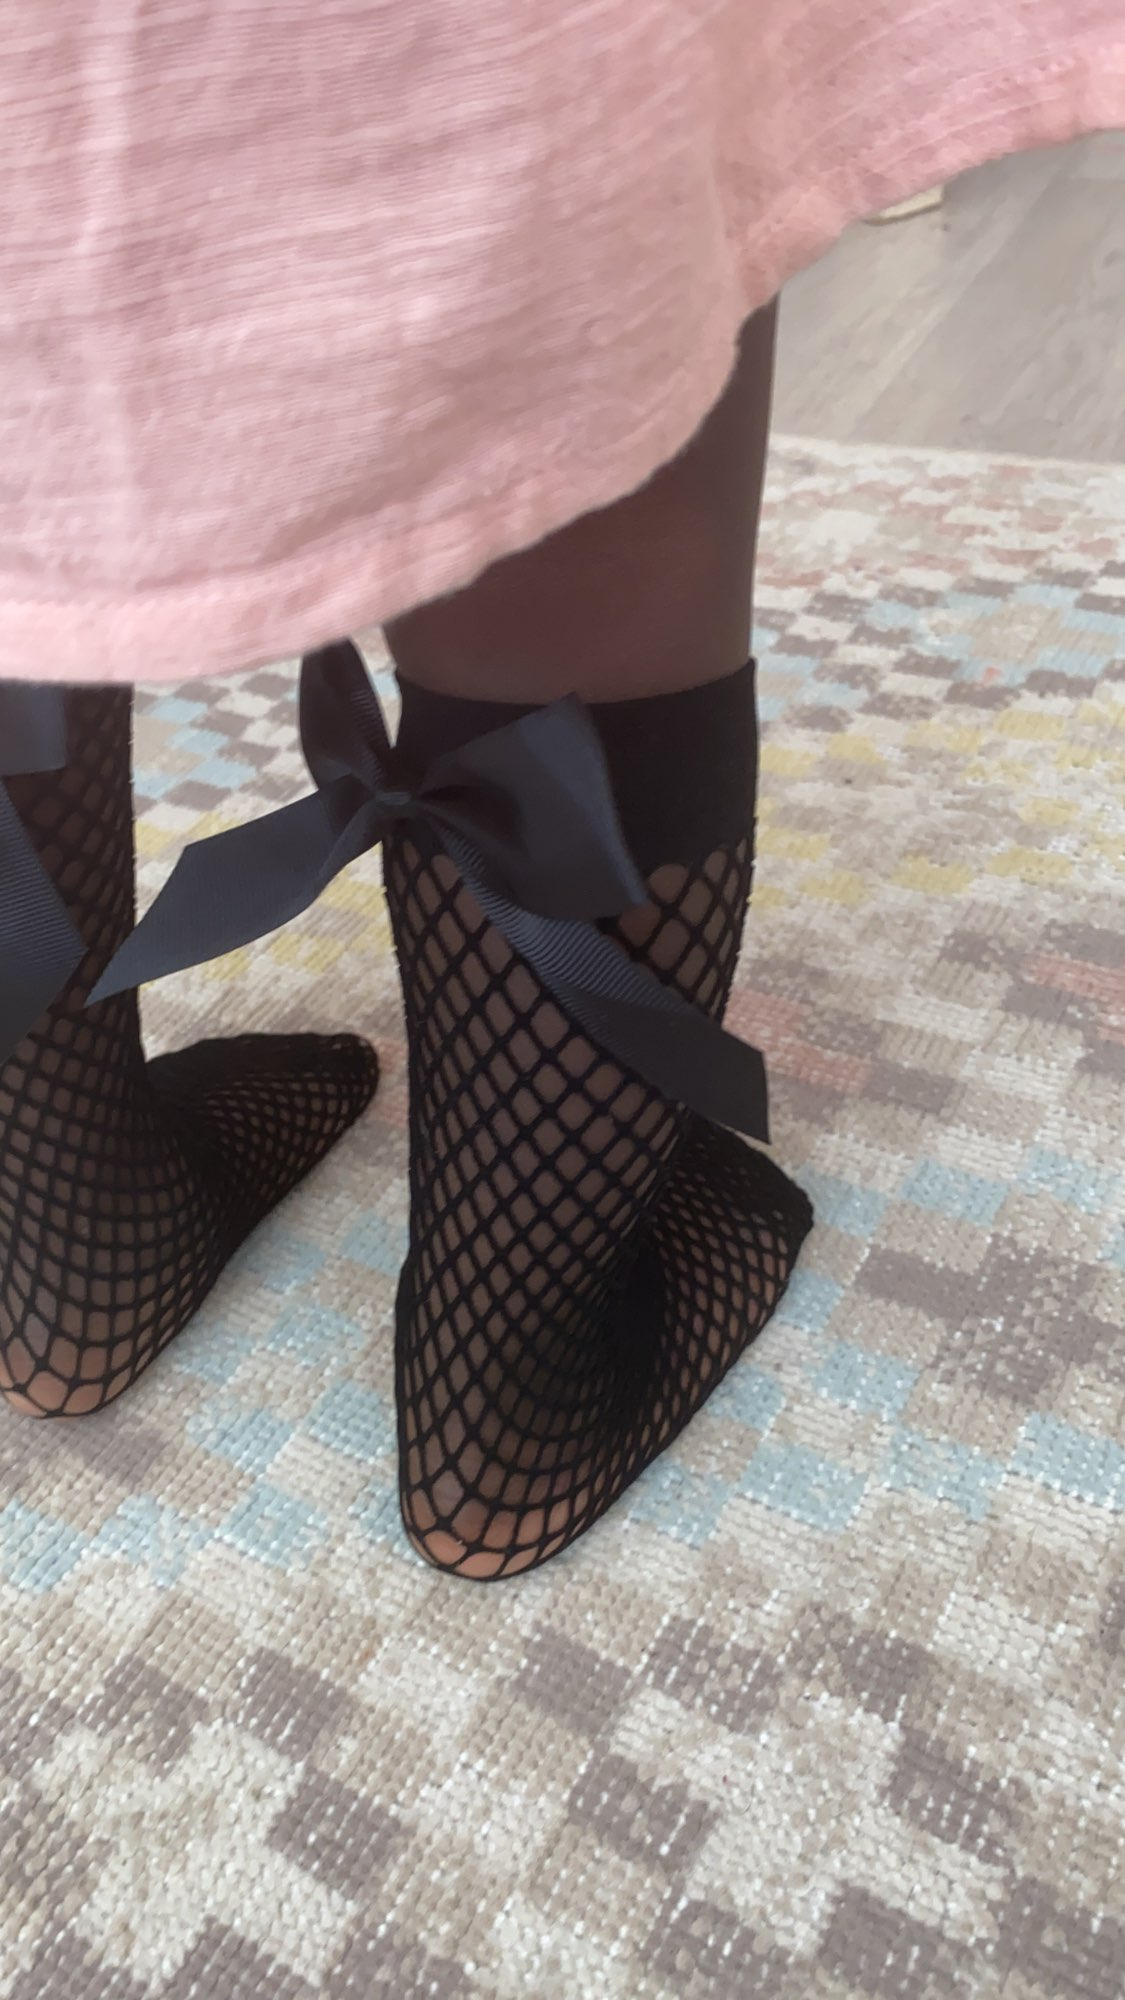 2Pair Women Baby Girls Kids Mesh Socks Bow Fishnet Ankle High Lace Fish Net Vintage Short Sock Fashion Summer One Size photo review